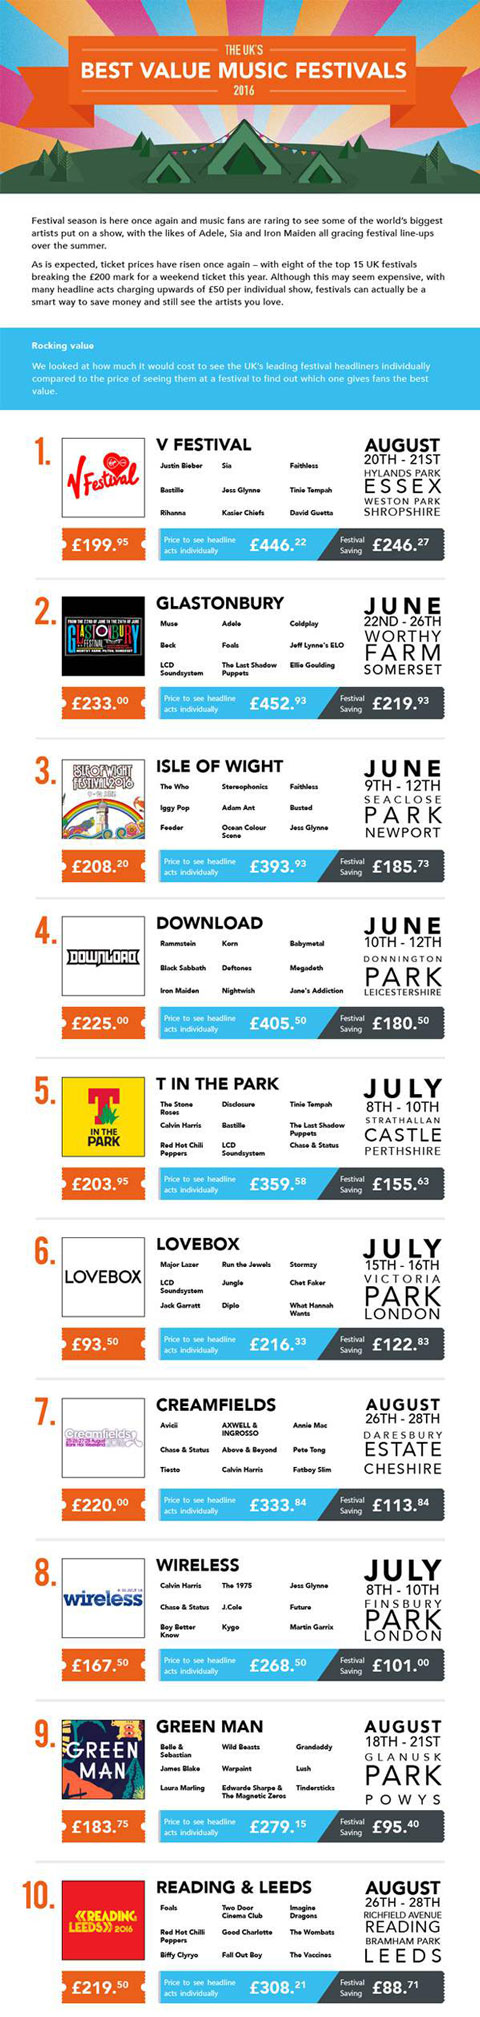 Top 10 Value For Money Festivals Infographic